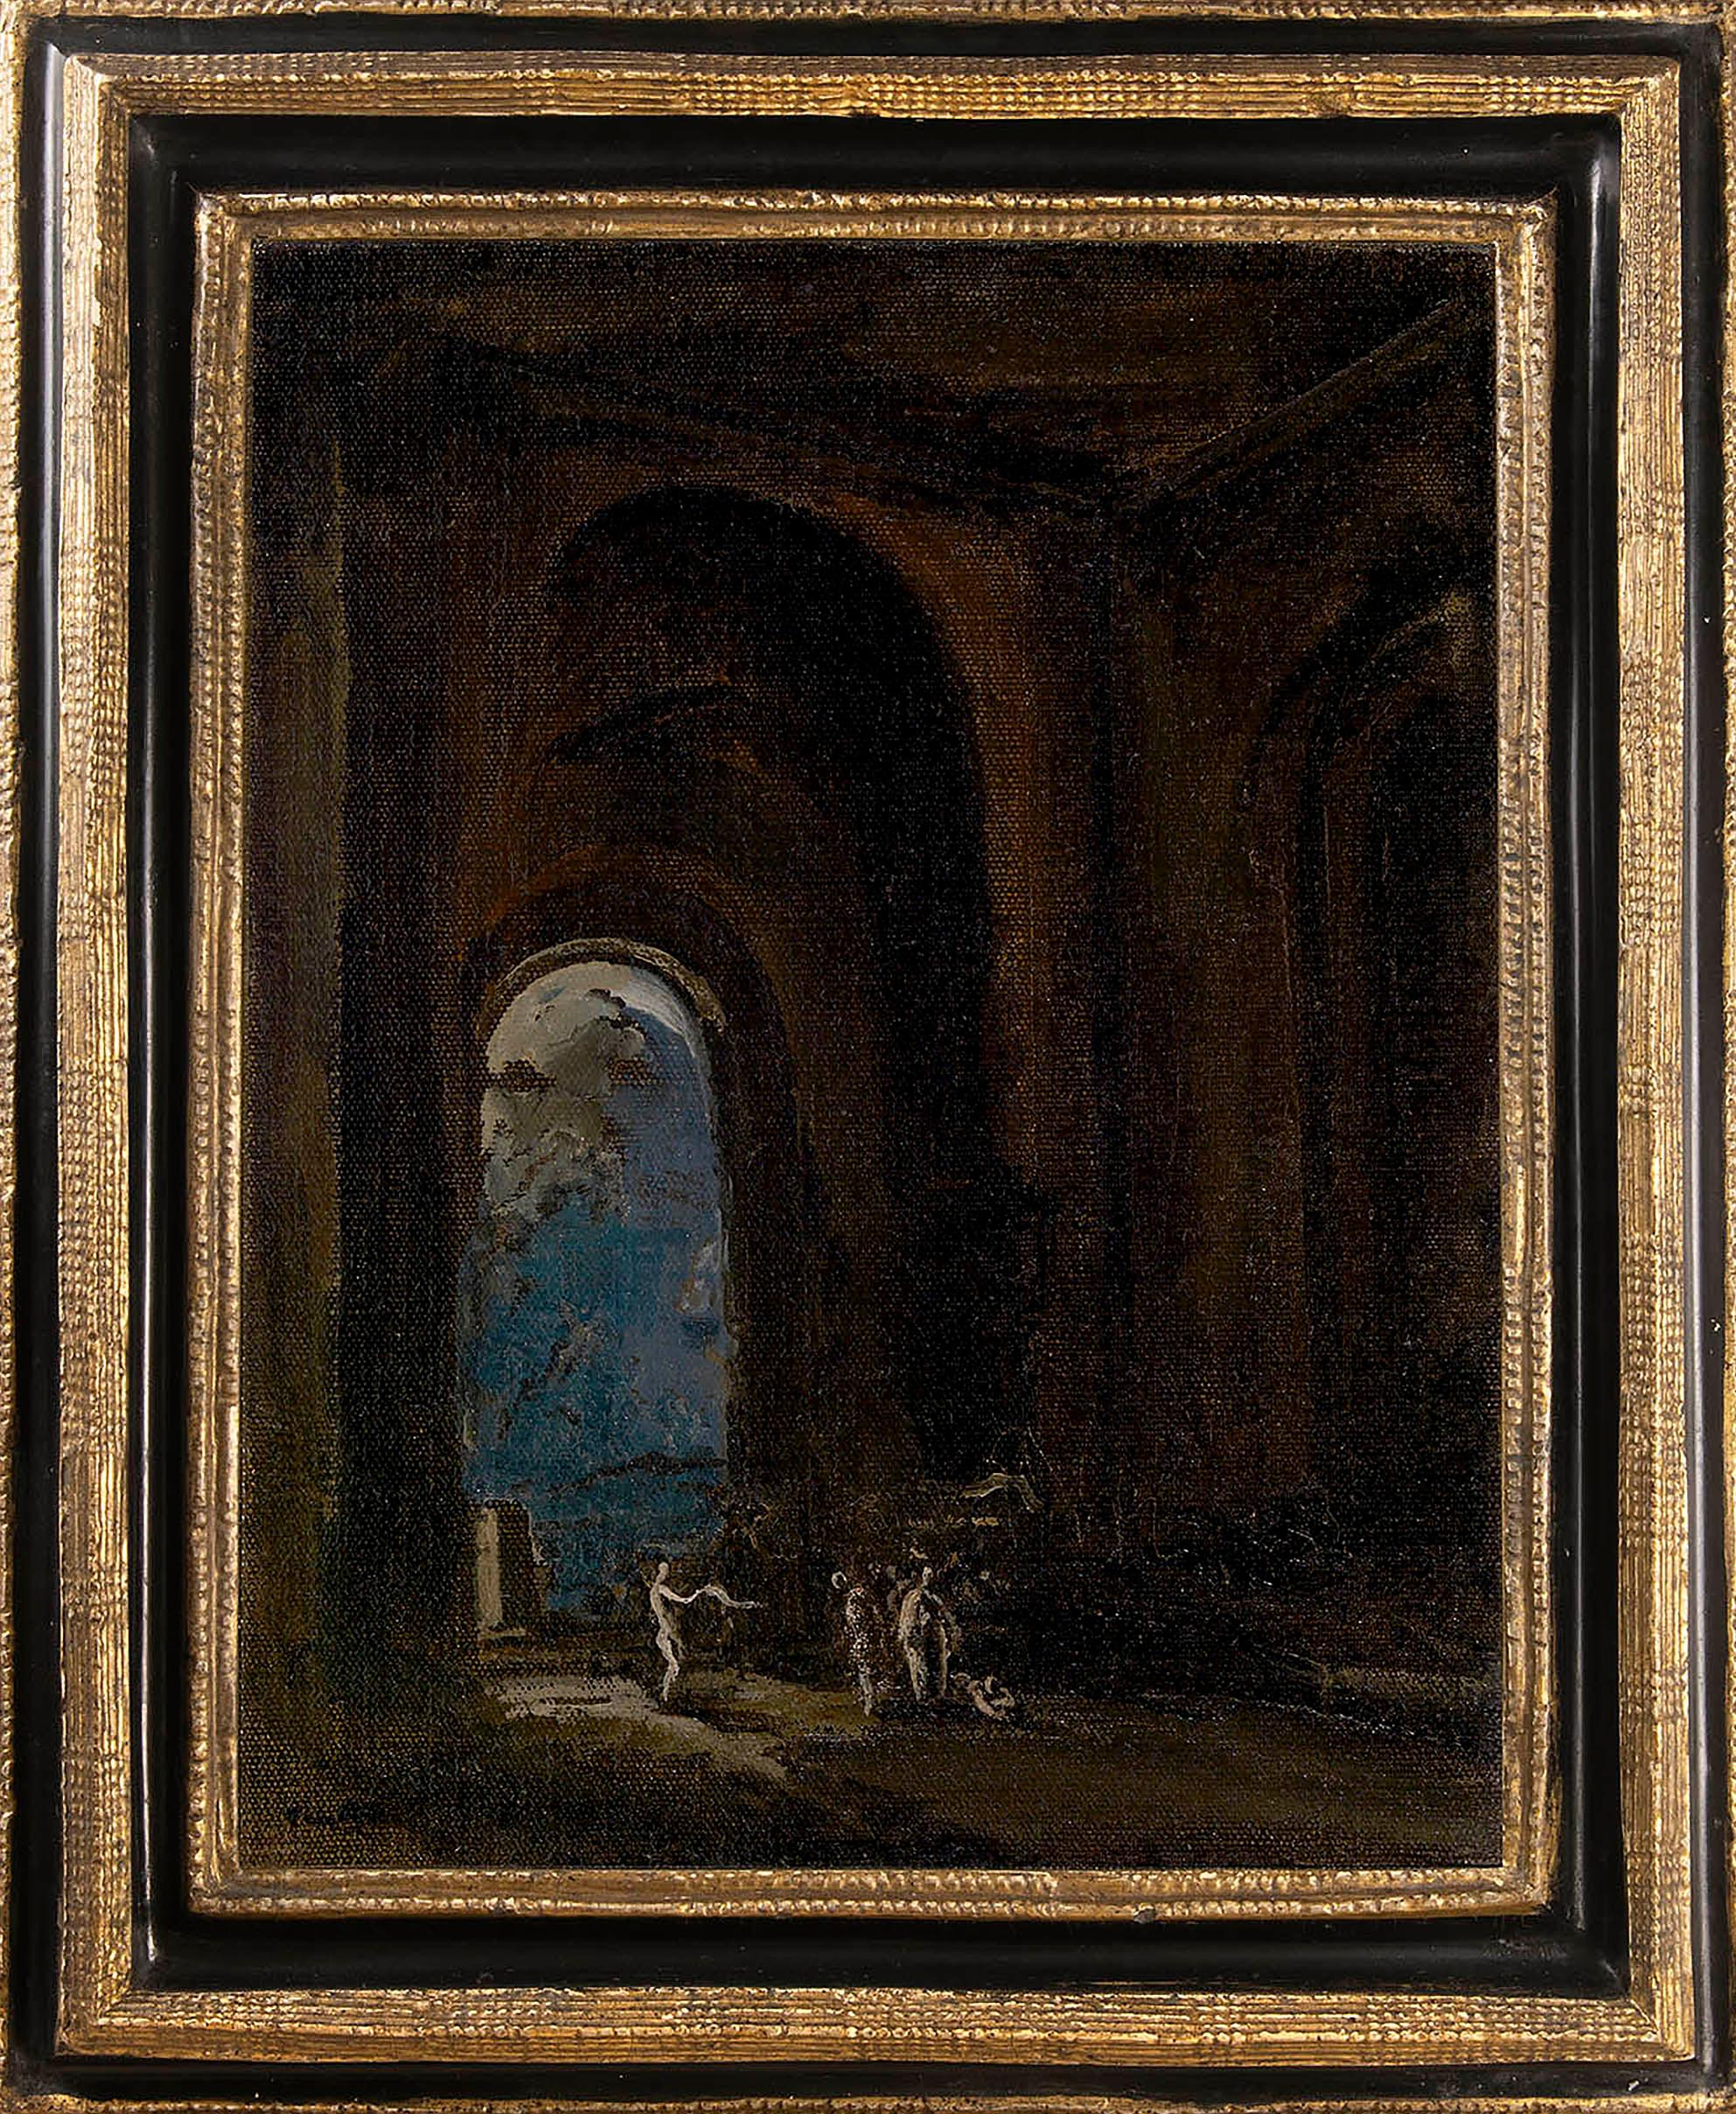 20th century oil painting entitled The Unknown Corner